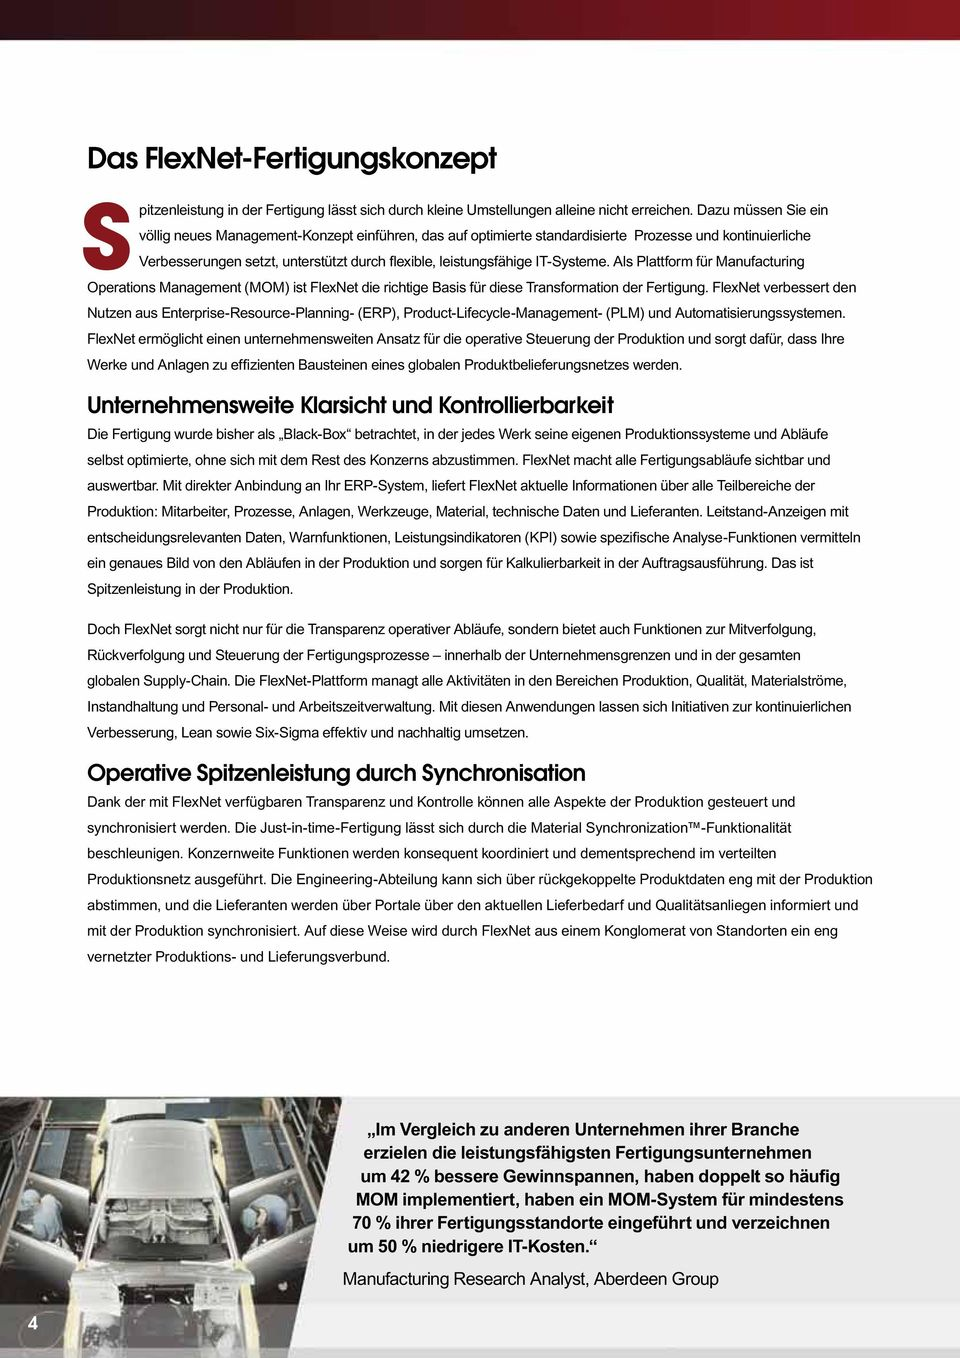 IT-Systeme. Als Plattform für Manufacturing Operations Management (MOM) ist FlexNet die richtige Basis für diese Transformation der Fertigung.